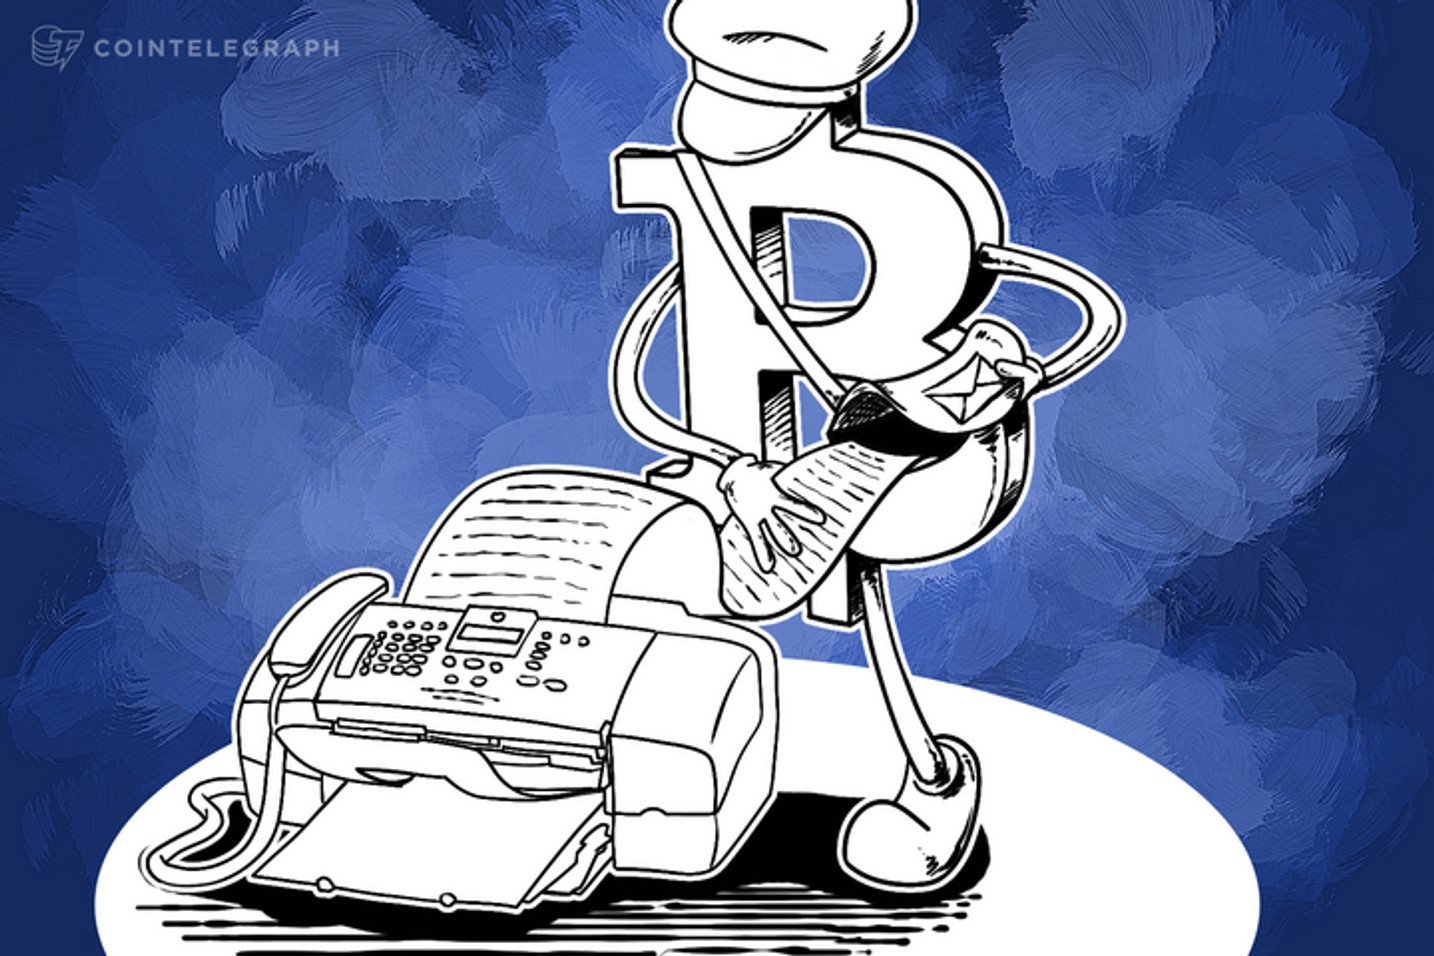 5 Things You Can Do With 'New' Bitcoin Fax (Op-Ed)